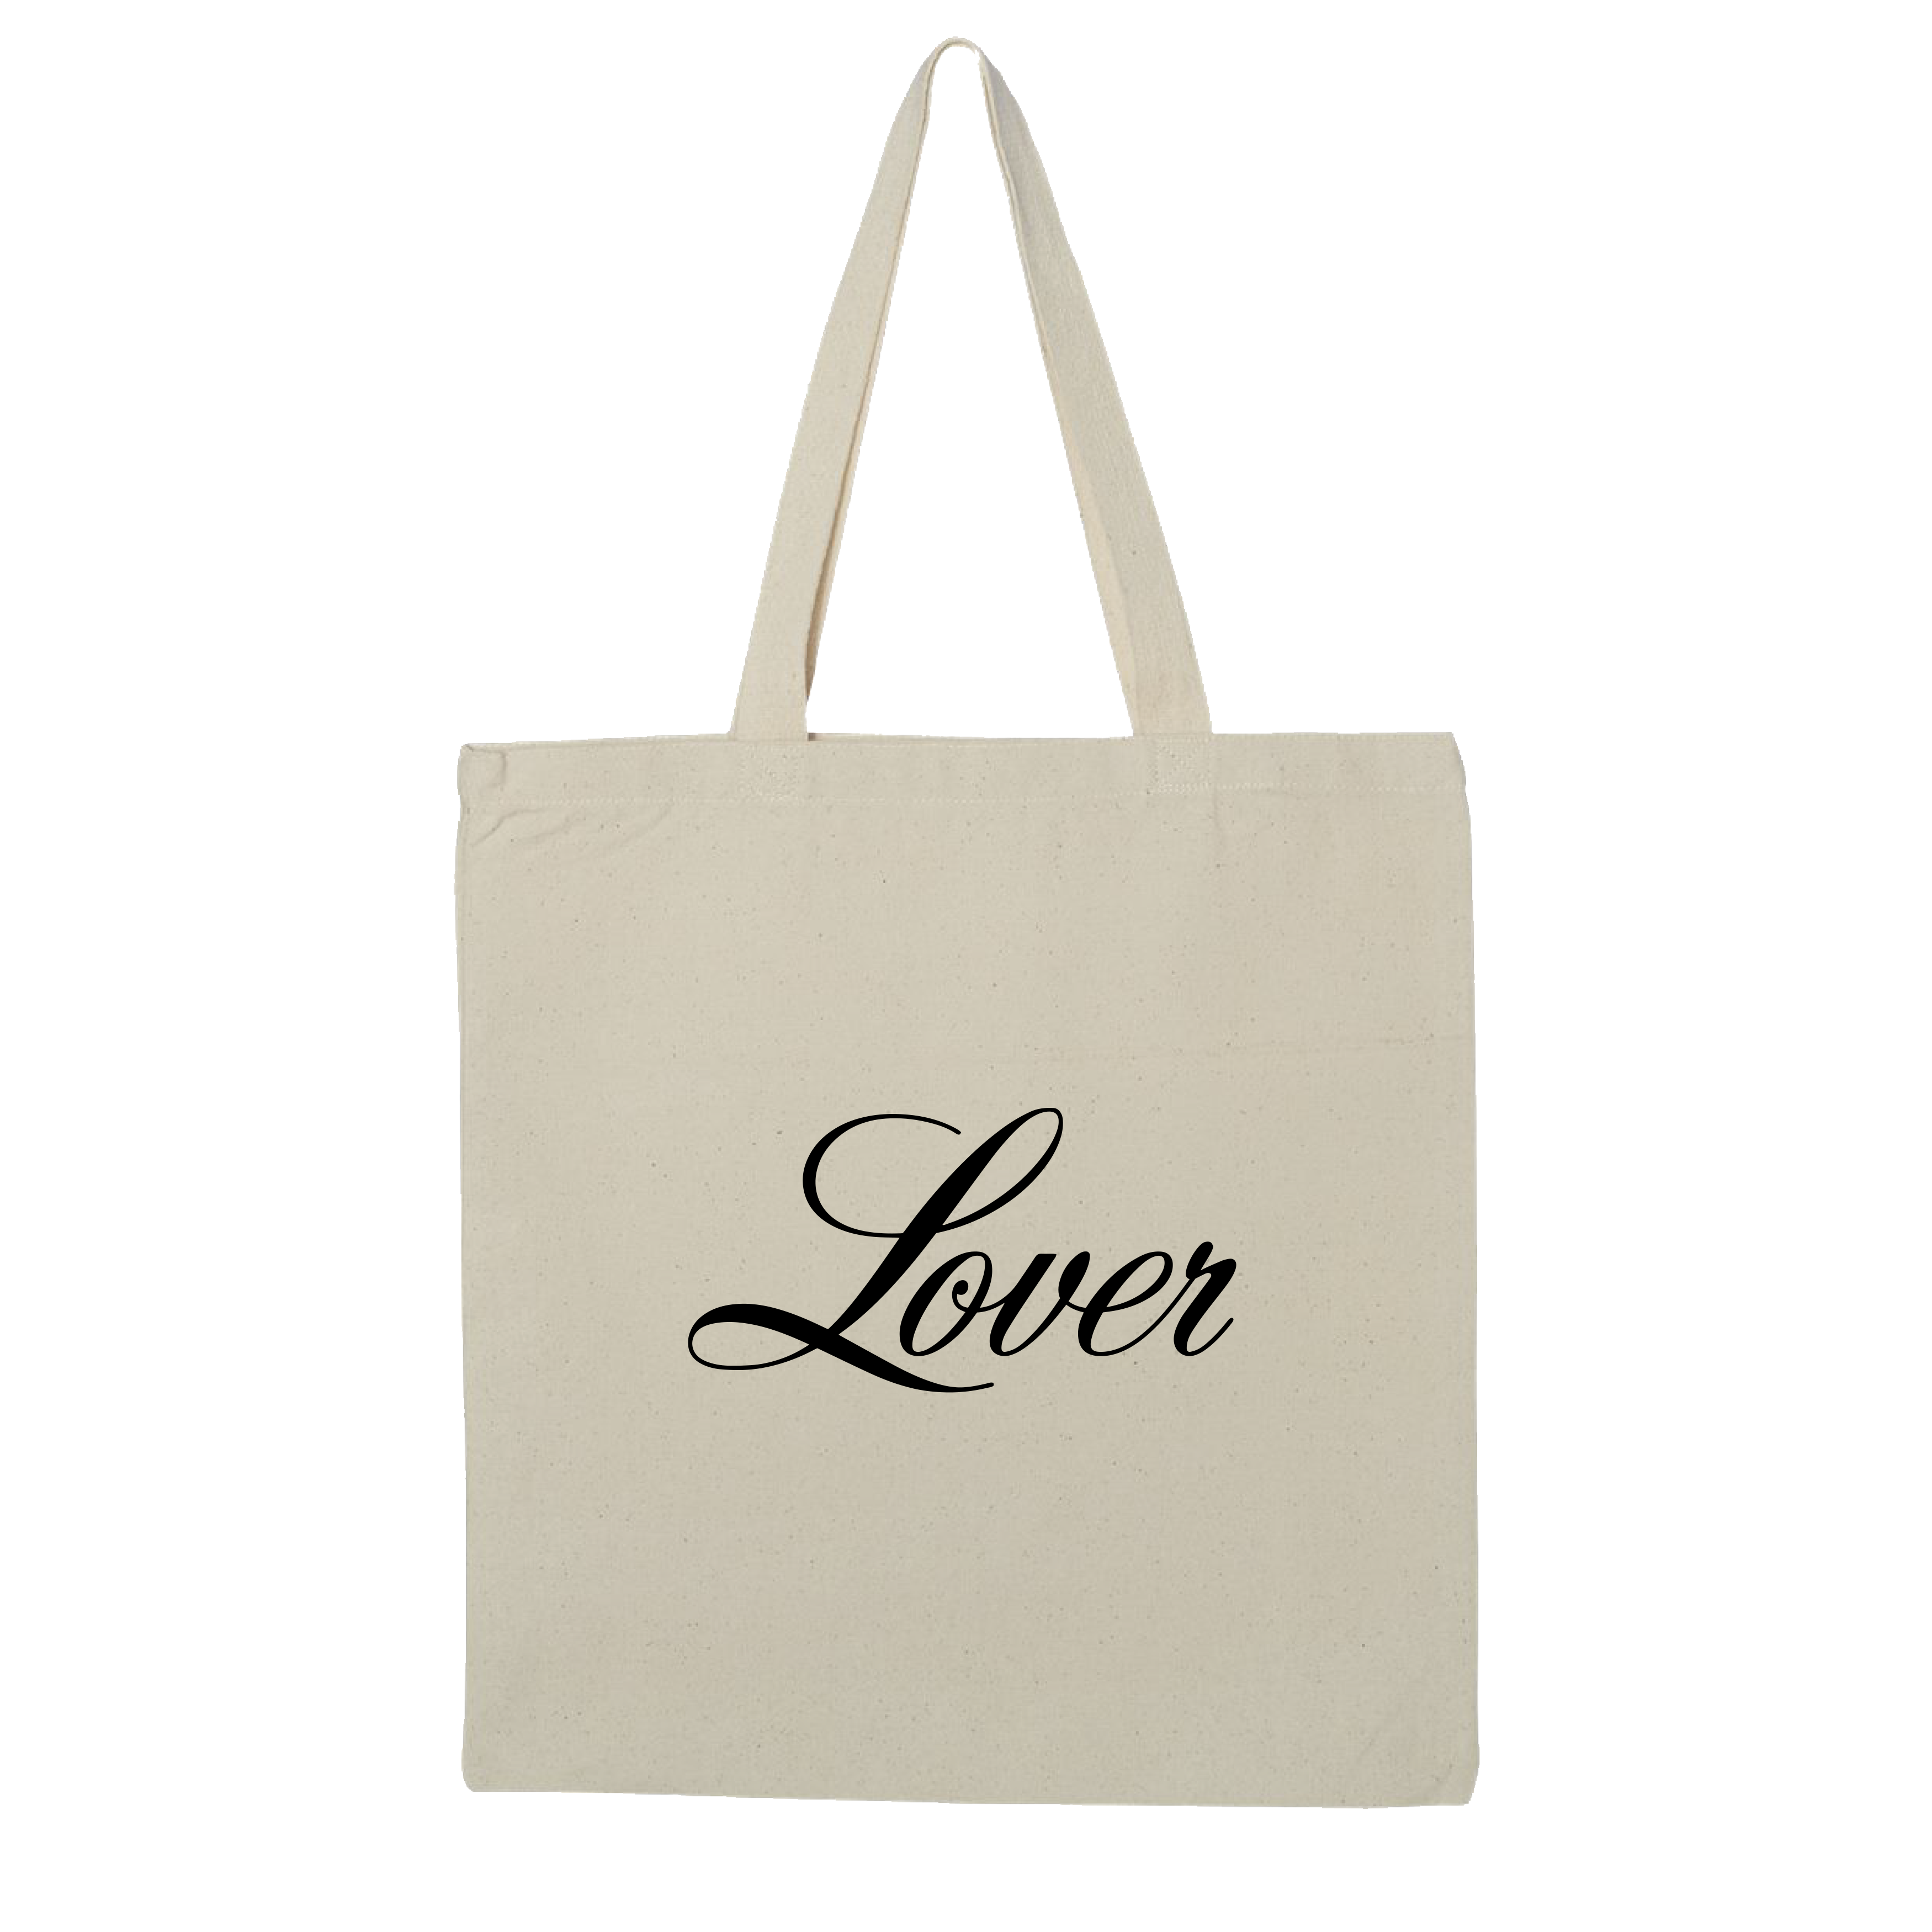 Lover Tote